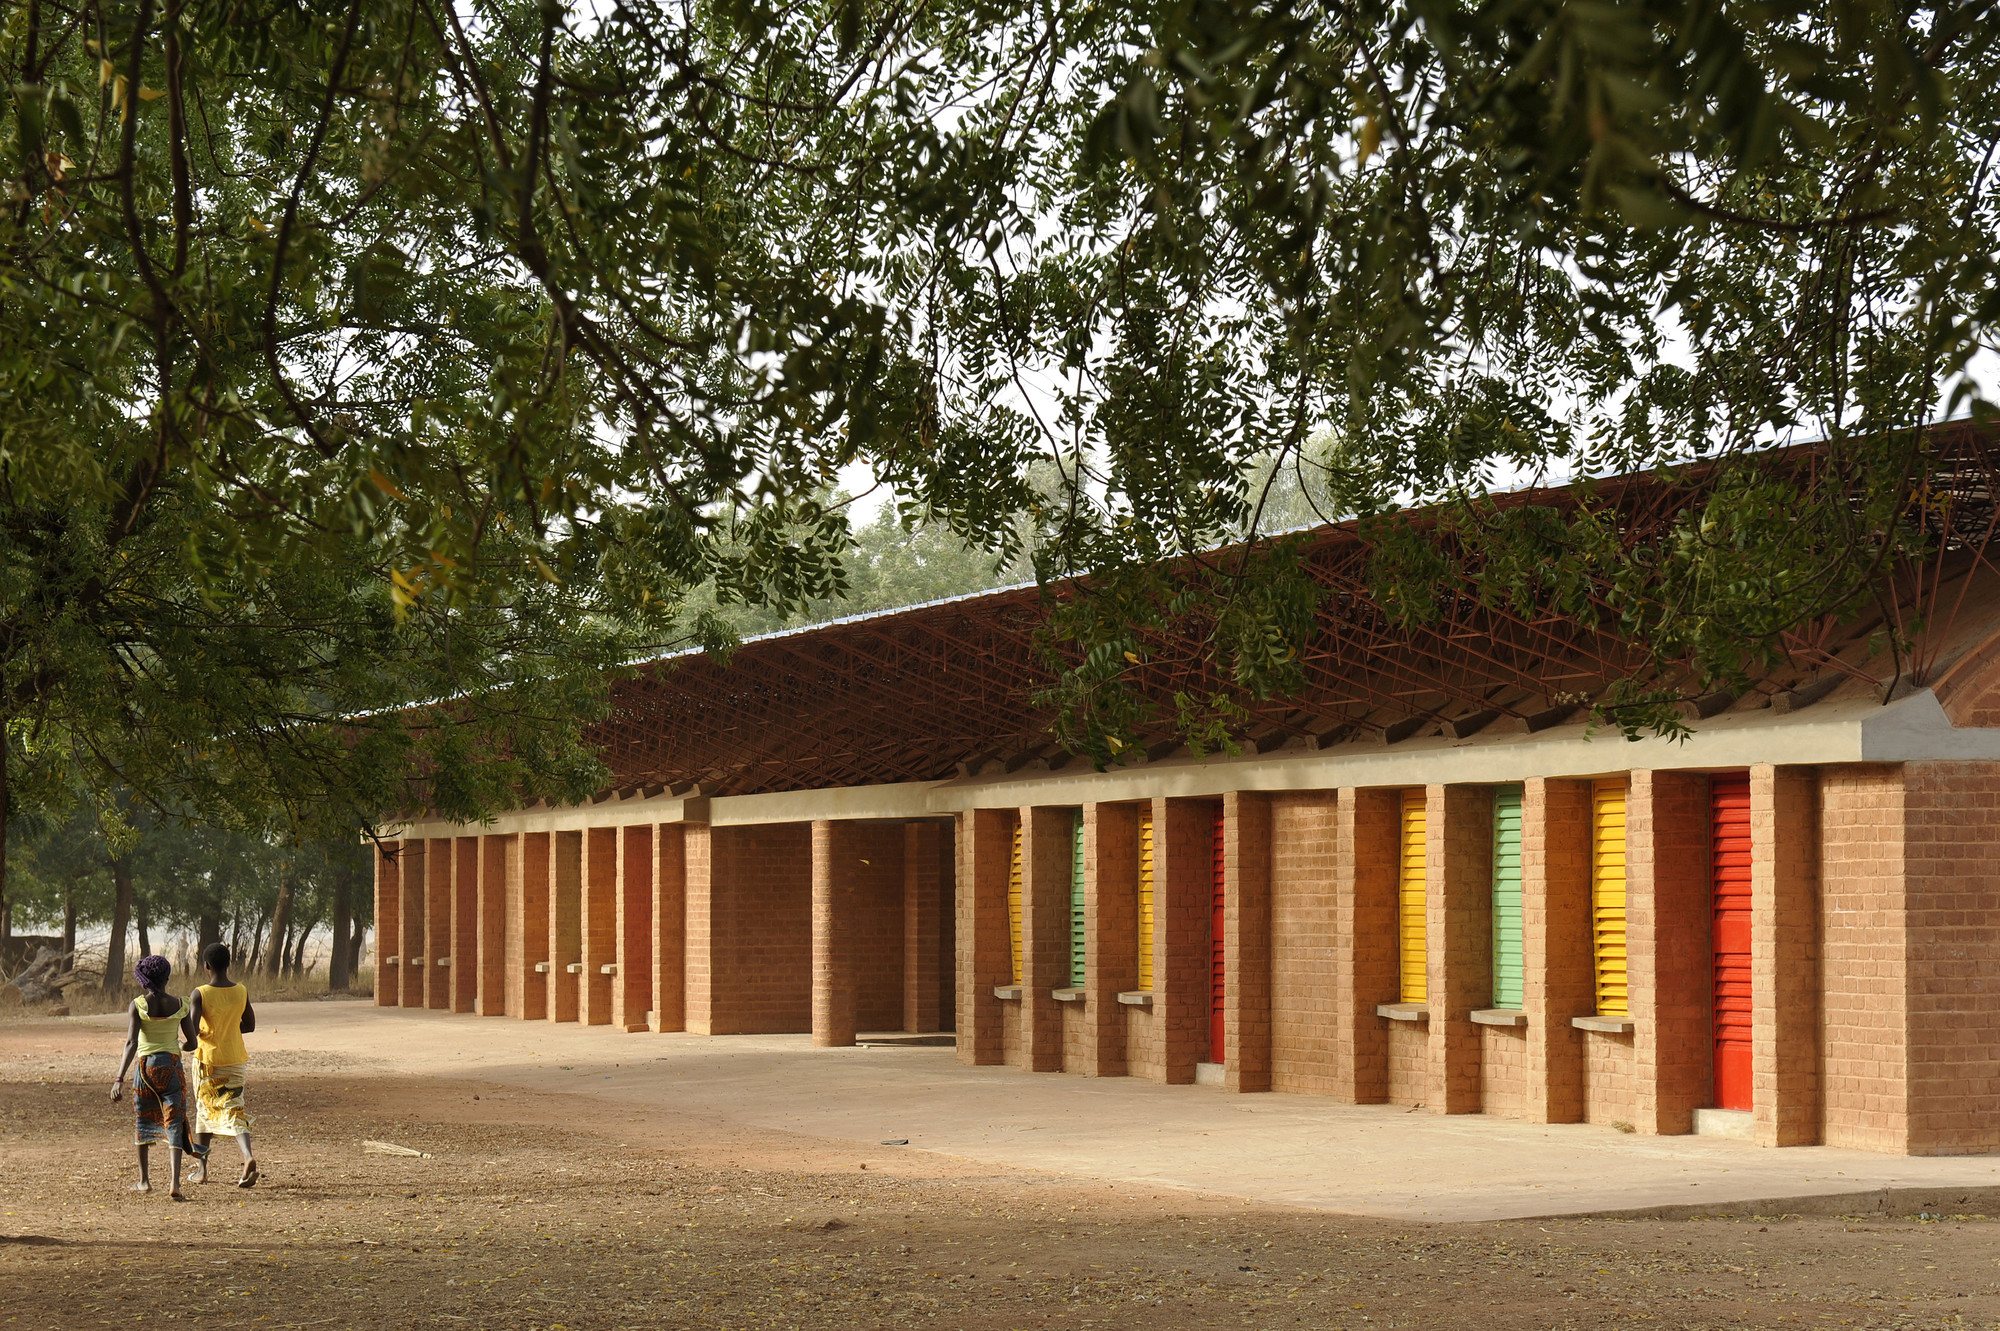 The Gando School Extension in Gando, Burkina Faso. Image © Erik Jan Ouwerkerk